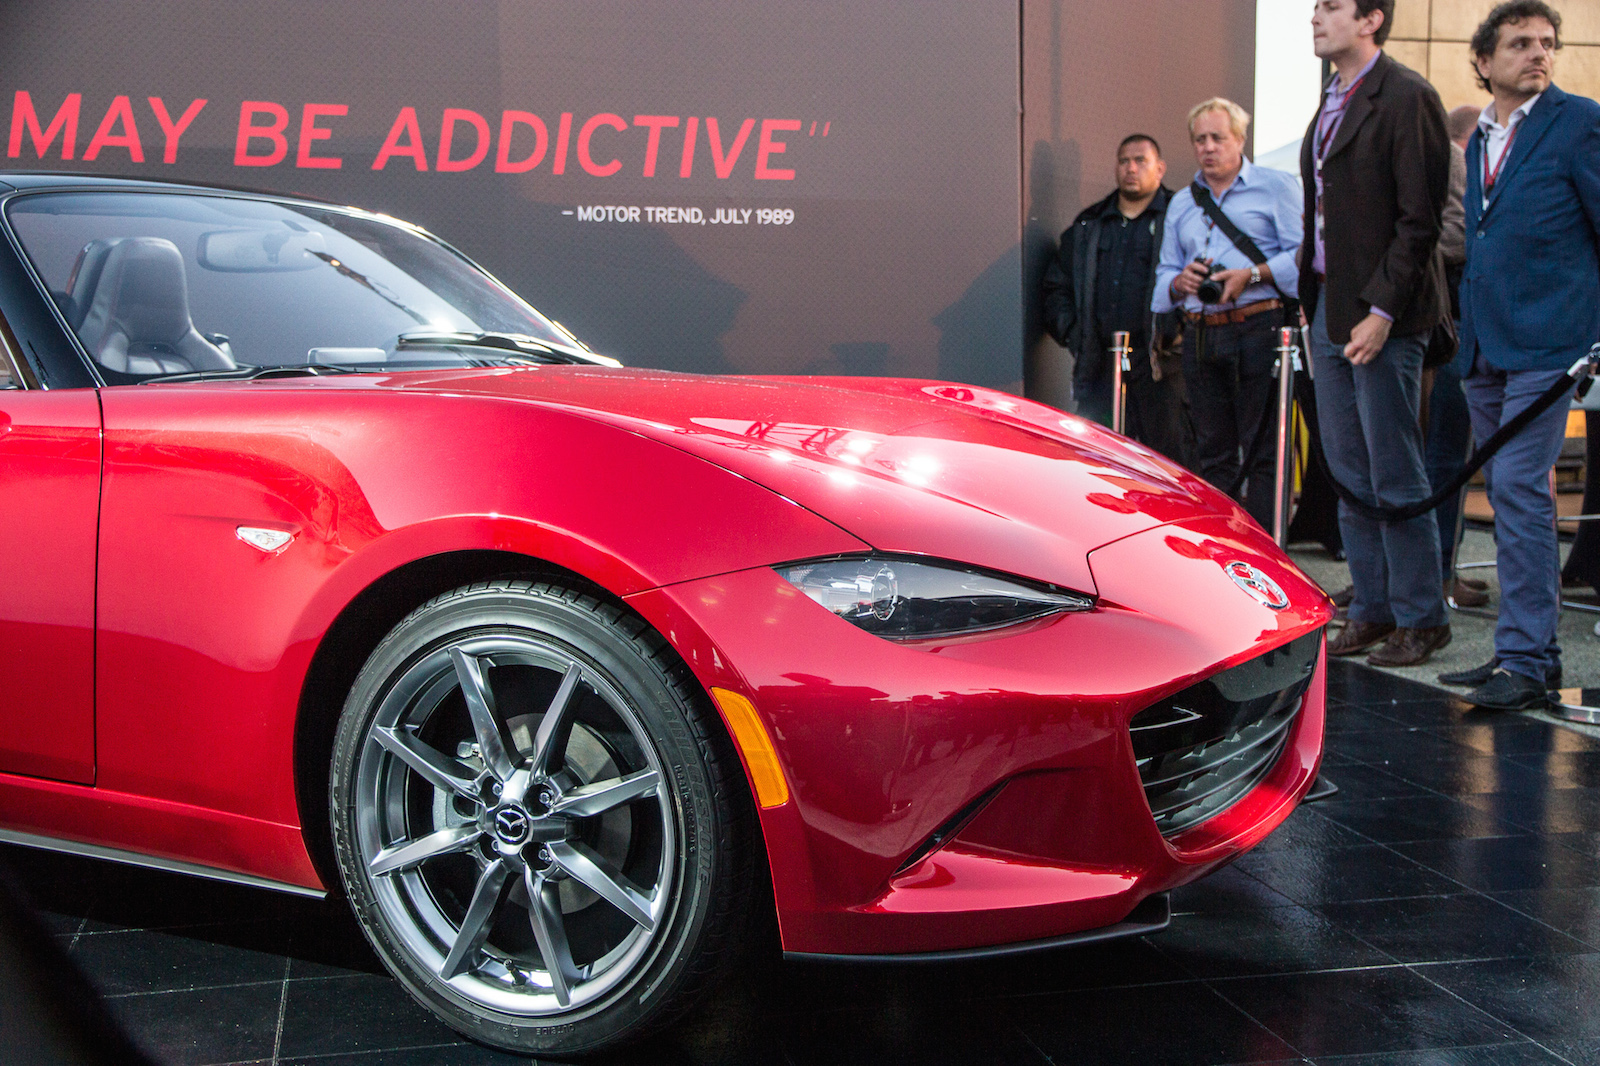 Mazda MX-5 Miata-Based Fiat 124 Spider To Debut This Year: Report